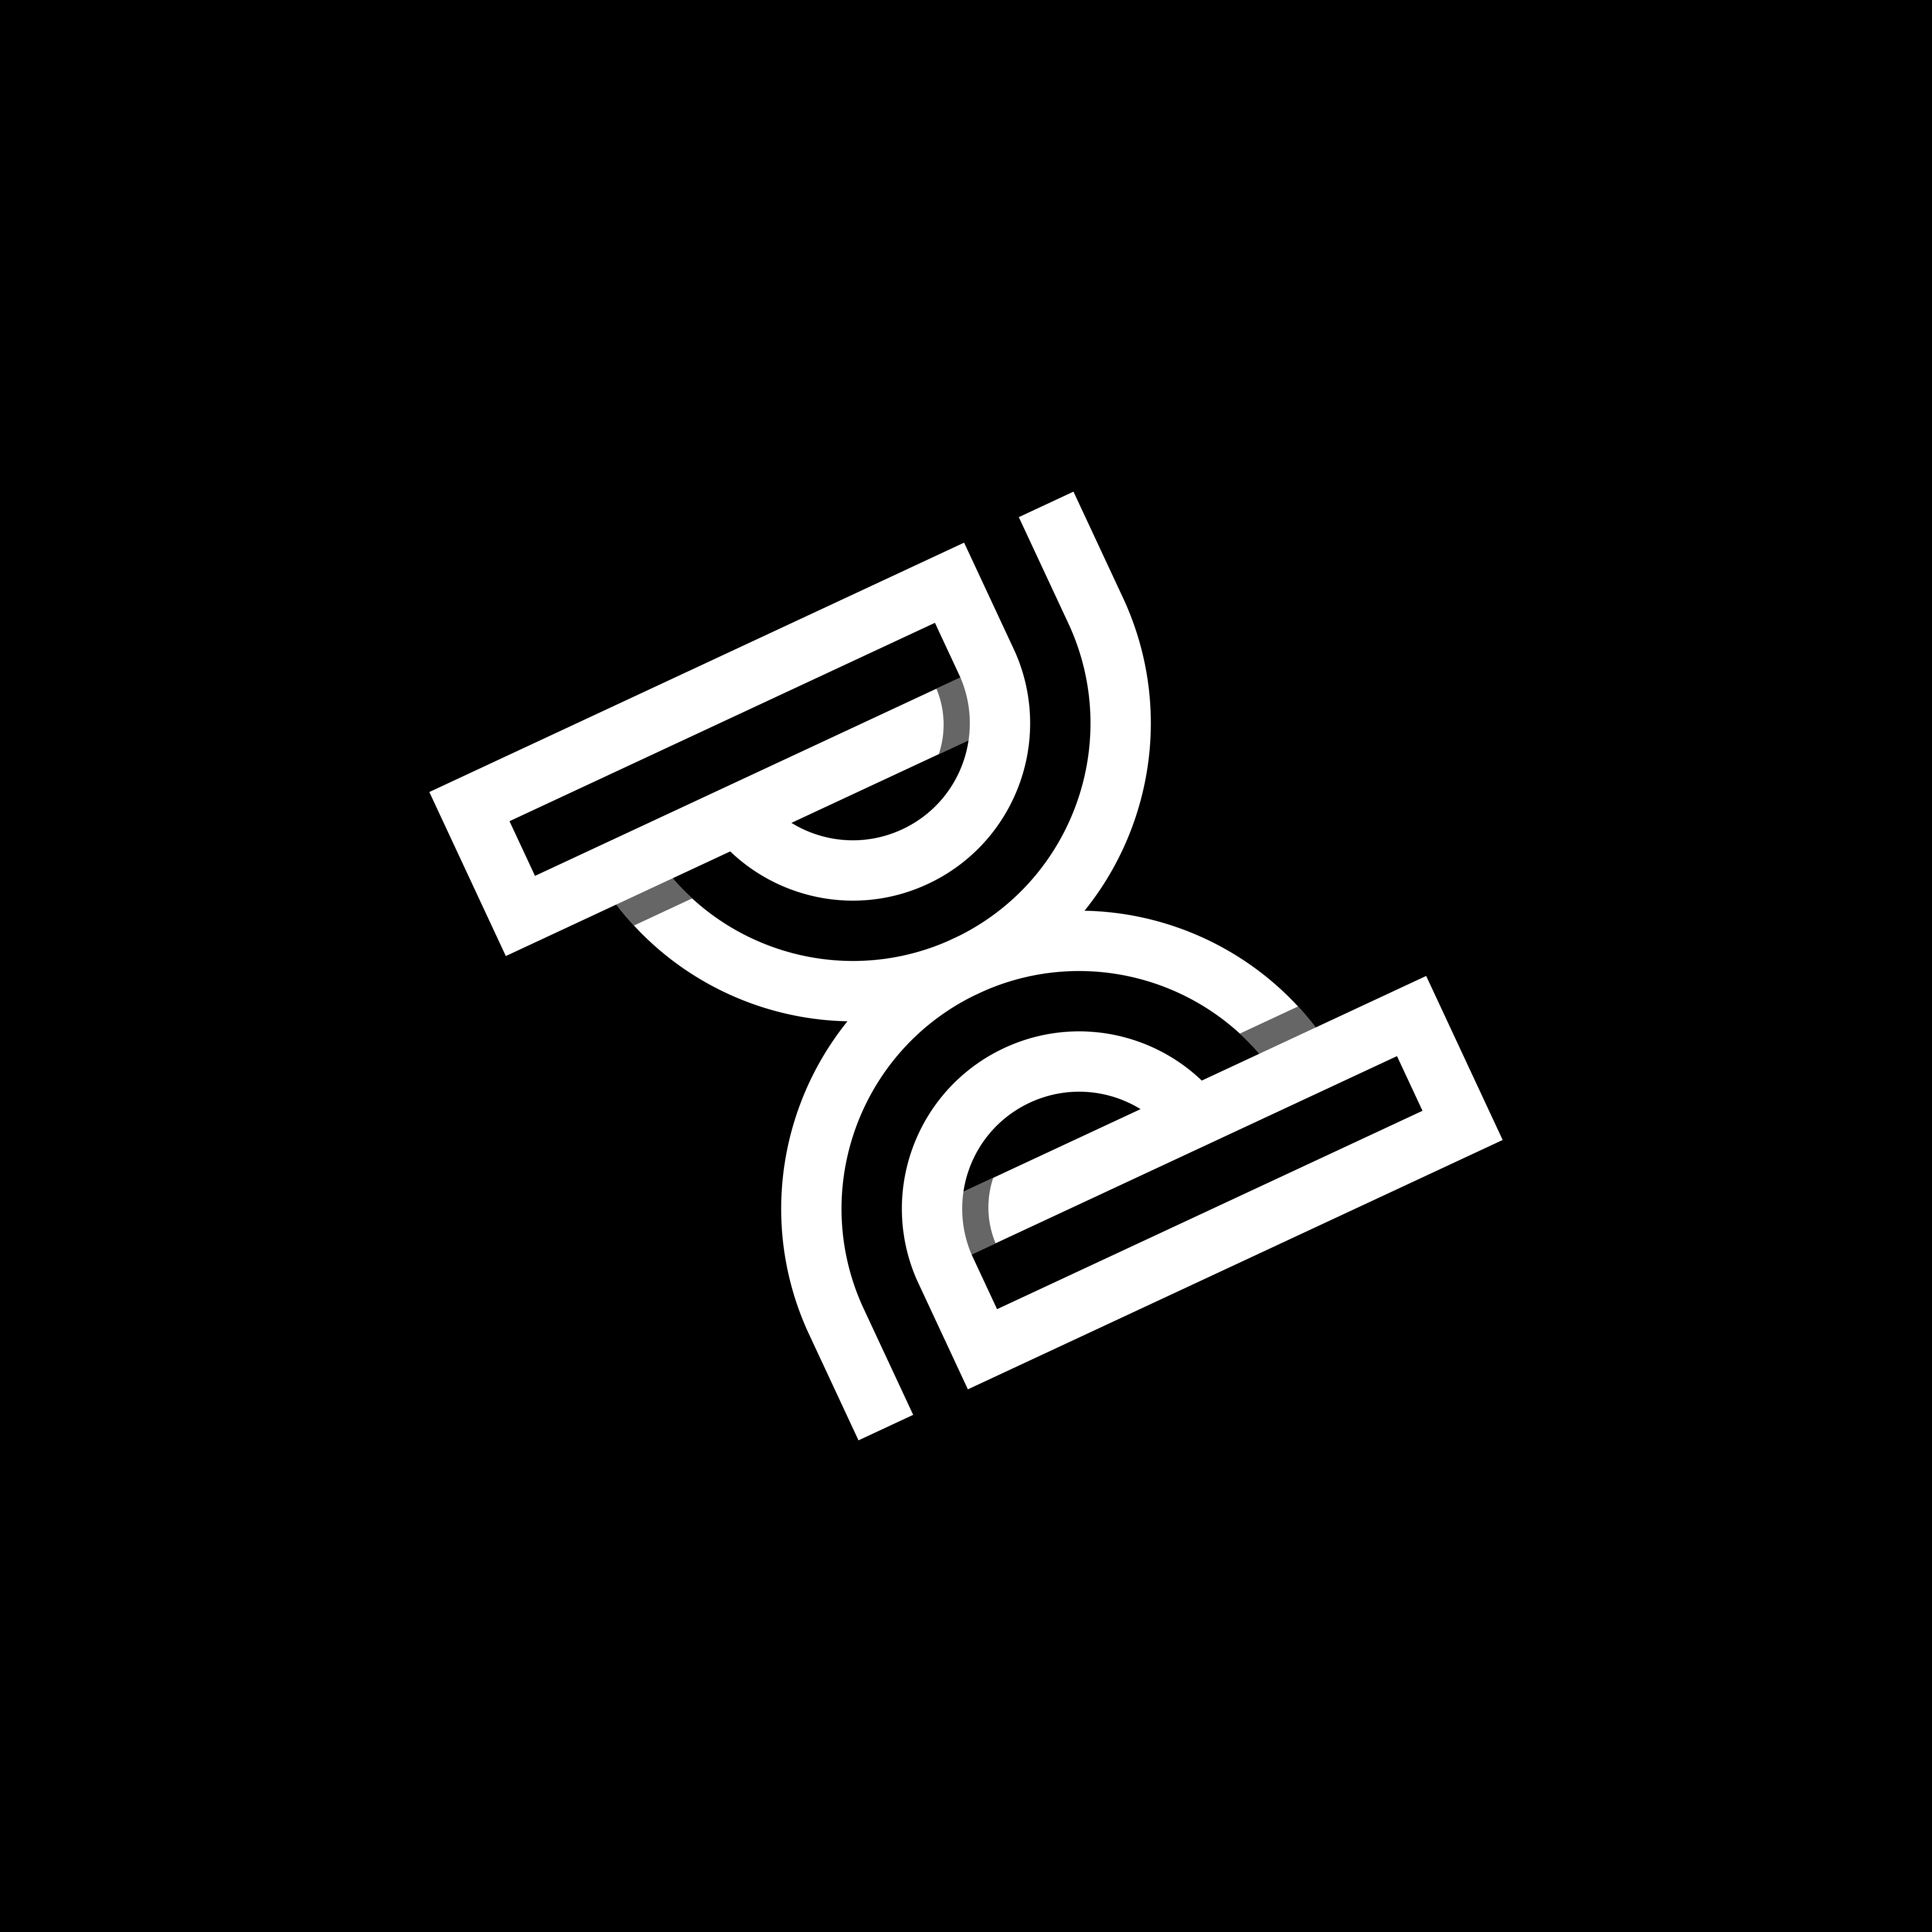 X Or Pd Letter Logos